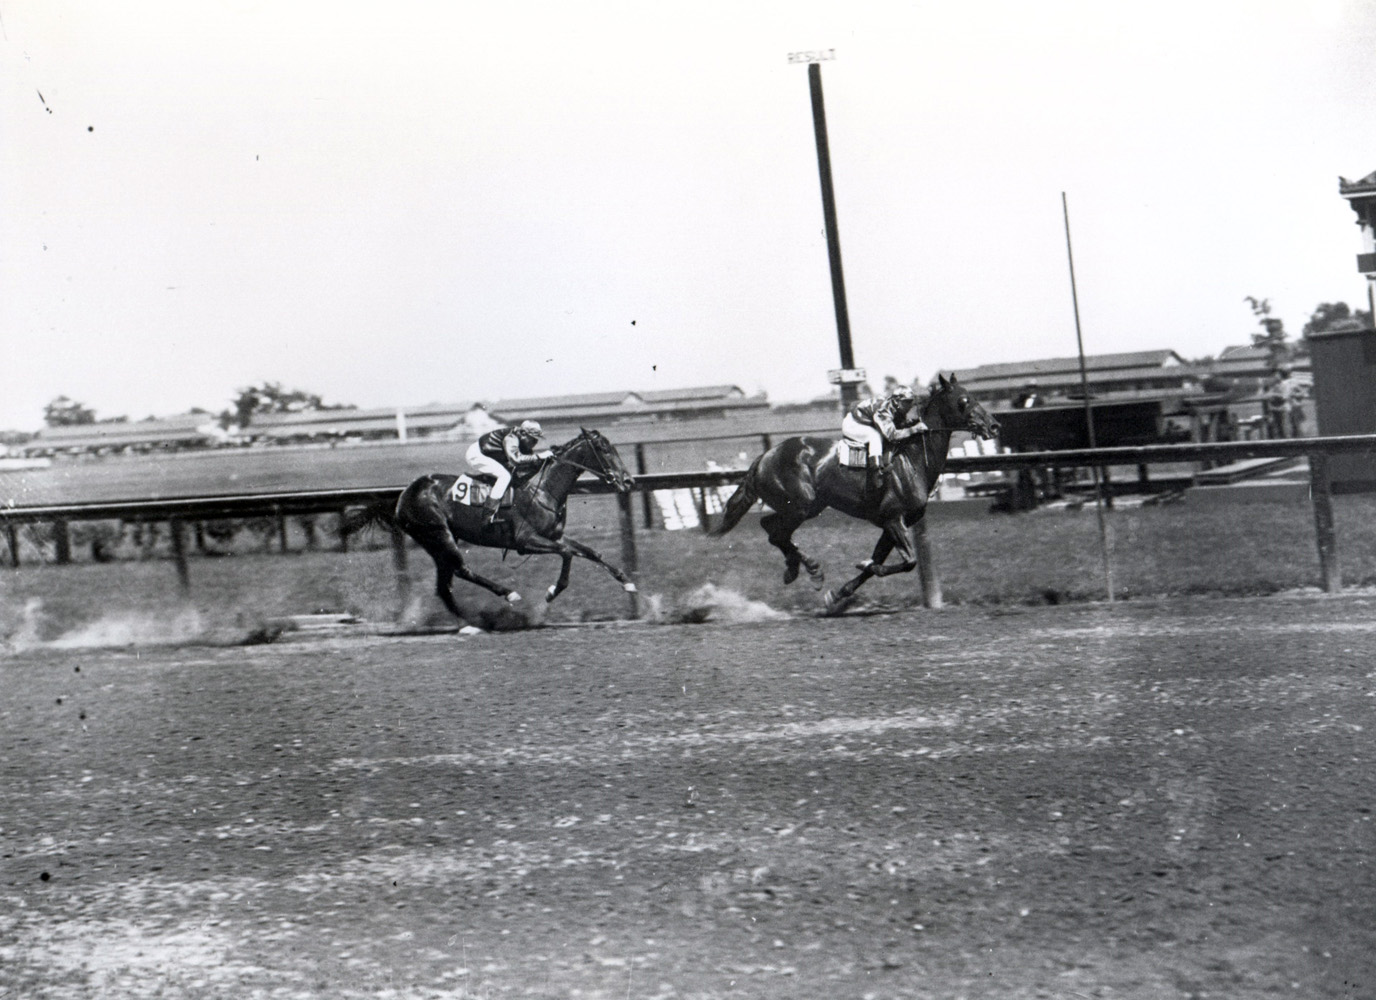 Roseben (Joe Notter up) winning the Sysonby Handicap at Sheepshead Bay, June 1908 (Keeneland Library Cook Collection/Museum Collection)